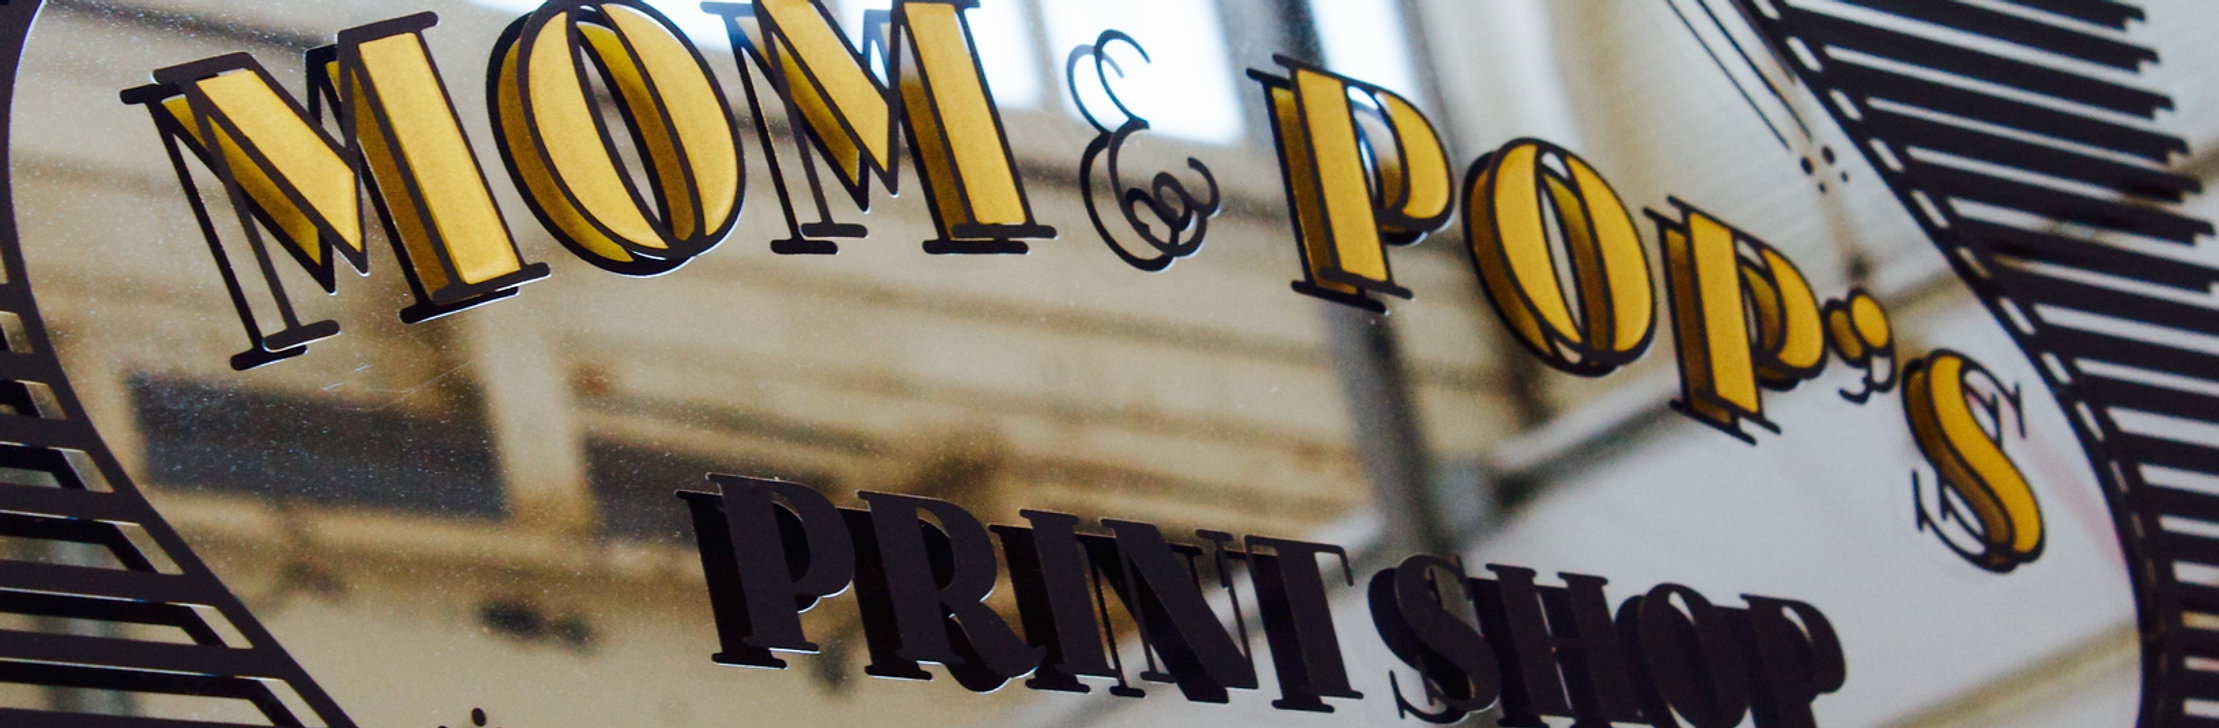 Direct to Garment Printing Charlotte, NC Screen printers Charlotte, NC Letterpress Wedding Invitations, Charlotte, NC Wedding Suites Charlotte, NC Letterpress Stationery Letterpress Save The  Dates Letterpress Thank You Cards,  Letterpress Business Cards